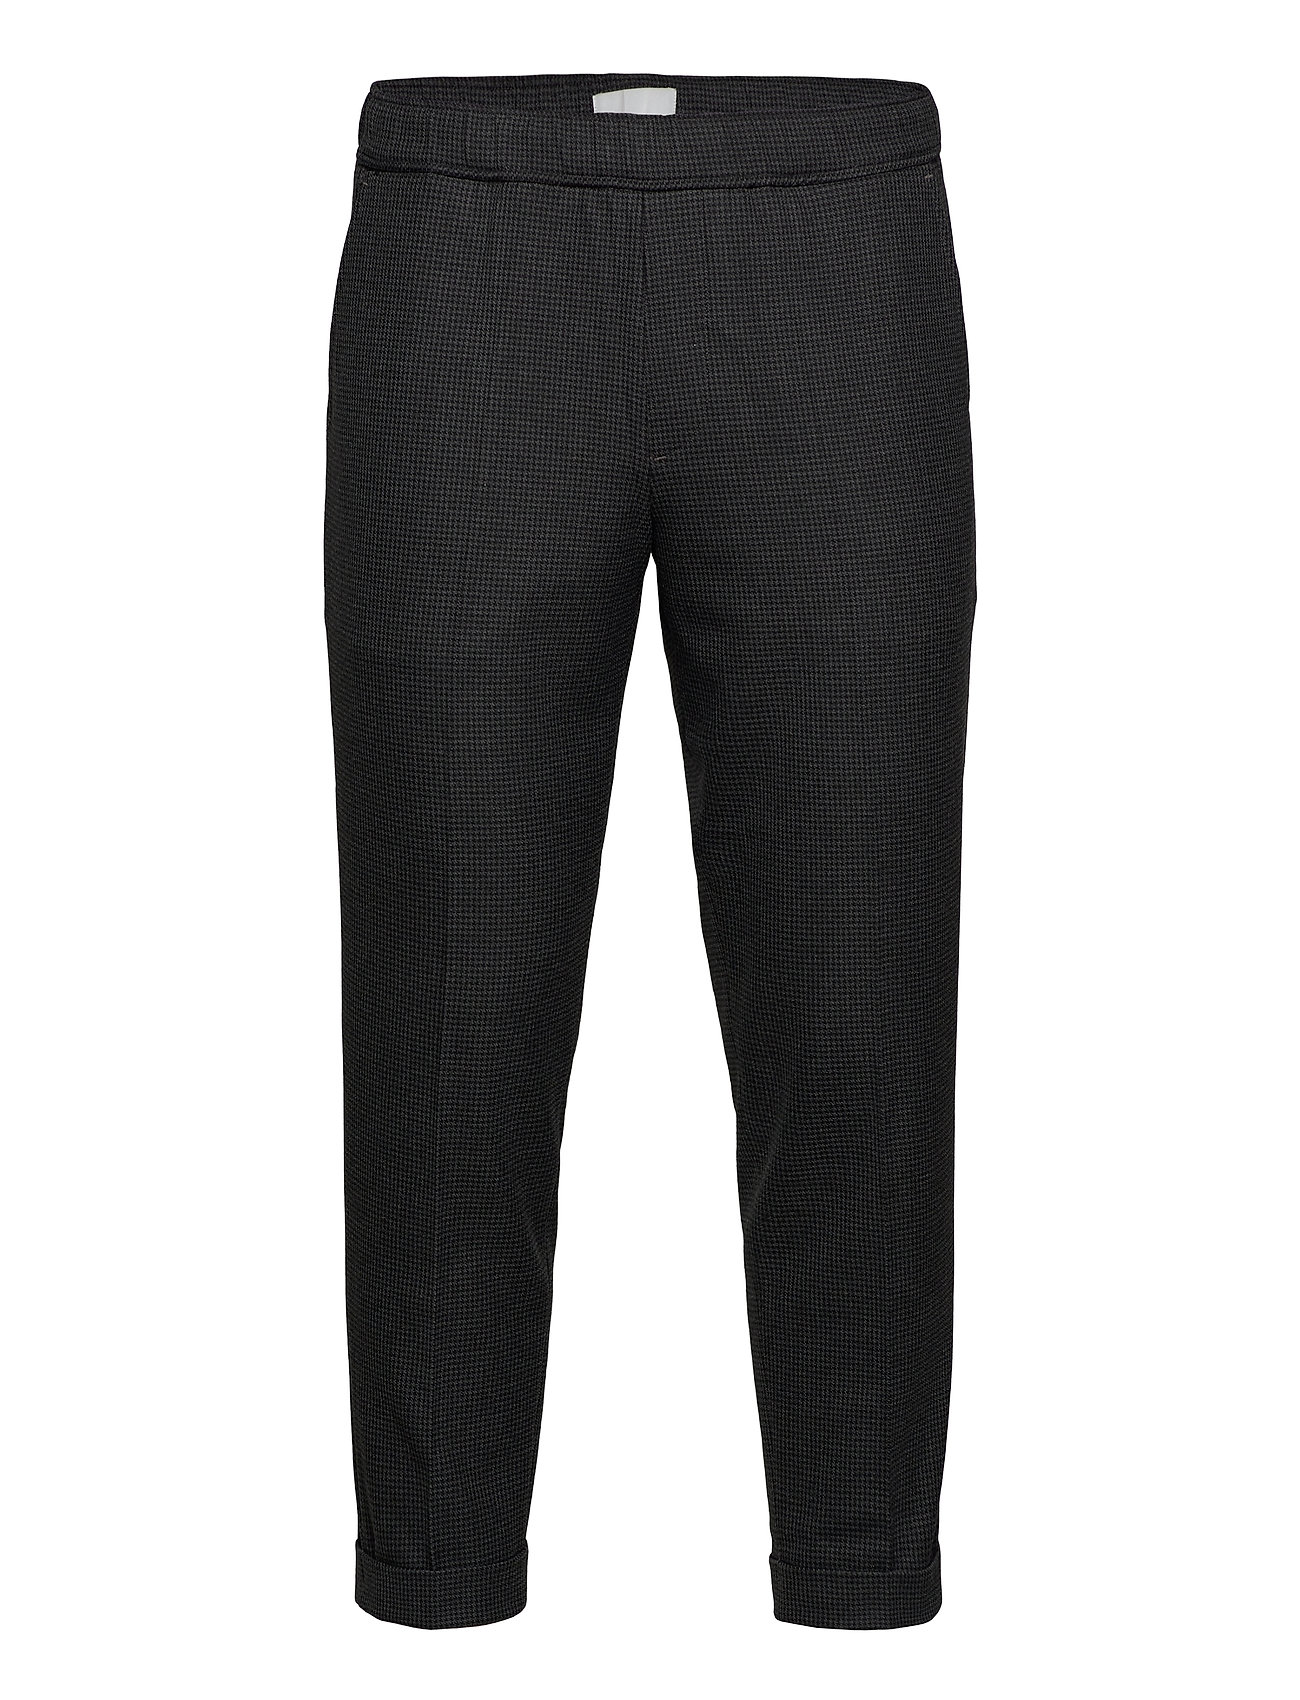 Image of Pilou Drawstring Pants Houndstooth Casual Bukser Grå Casual Friday (3445901975)